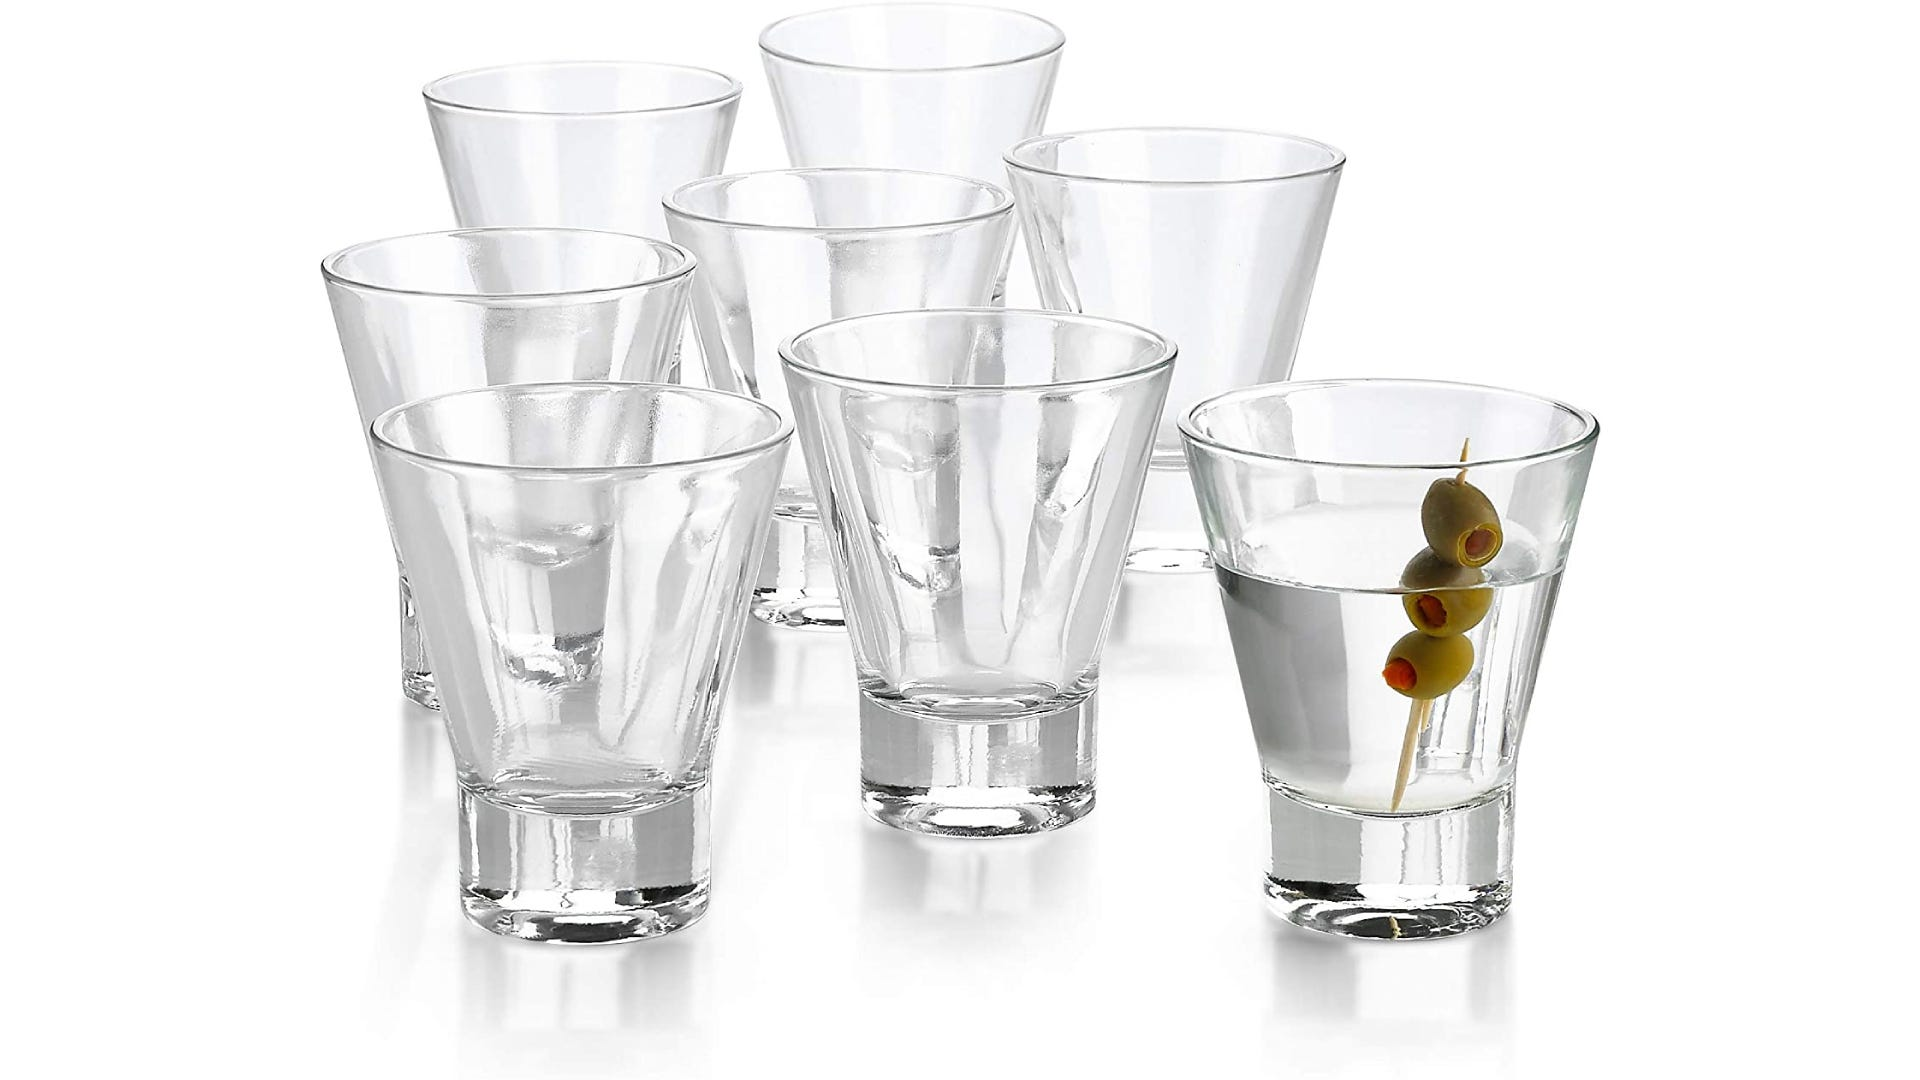 Eight conical clear glasses, one filled with olives and clear liquid.